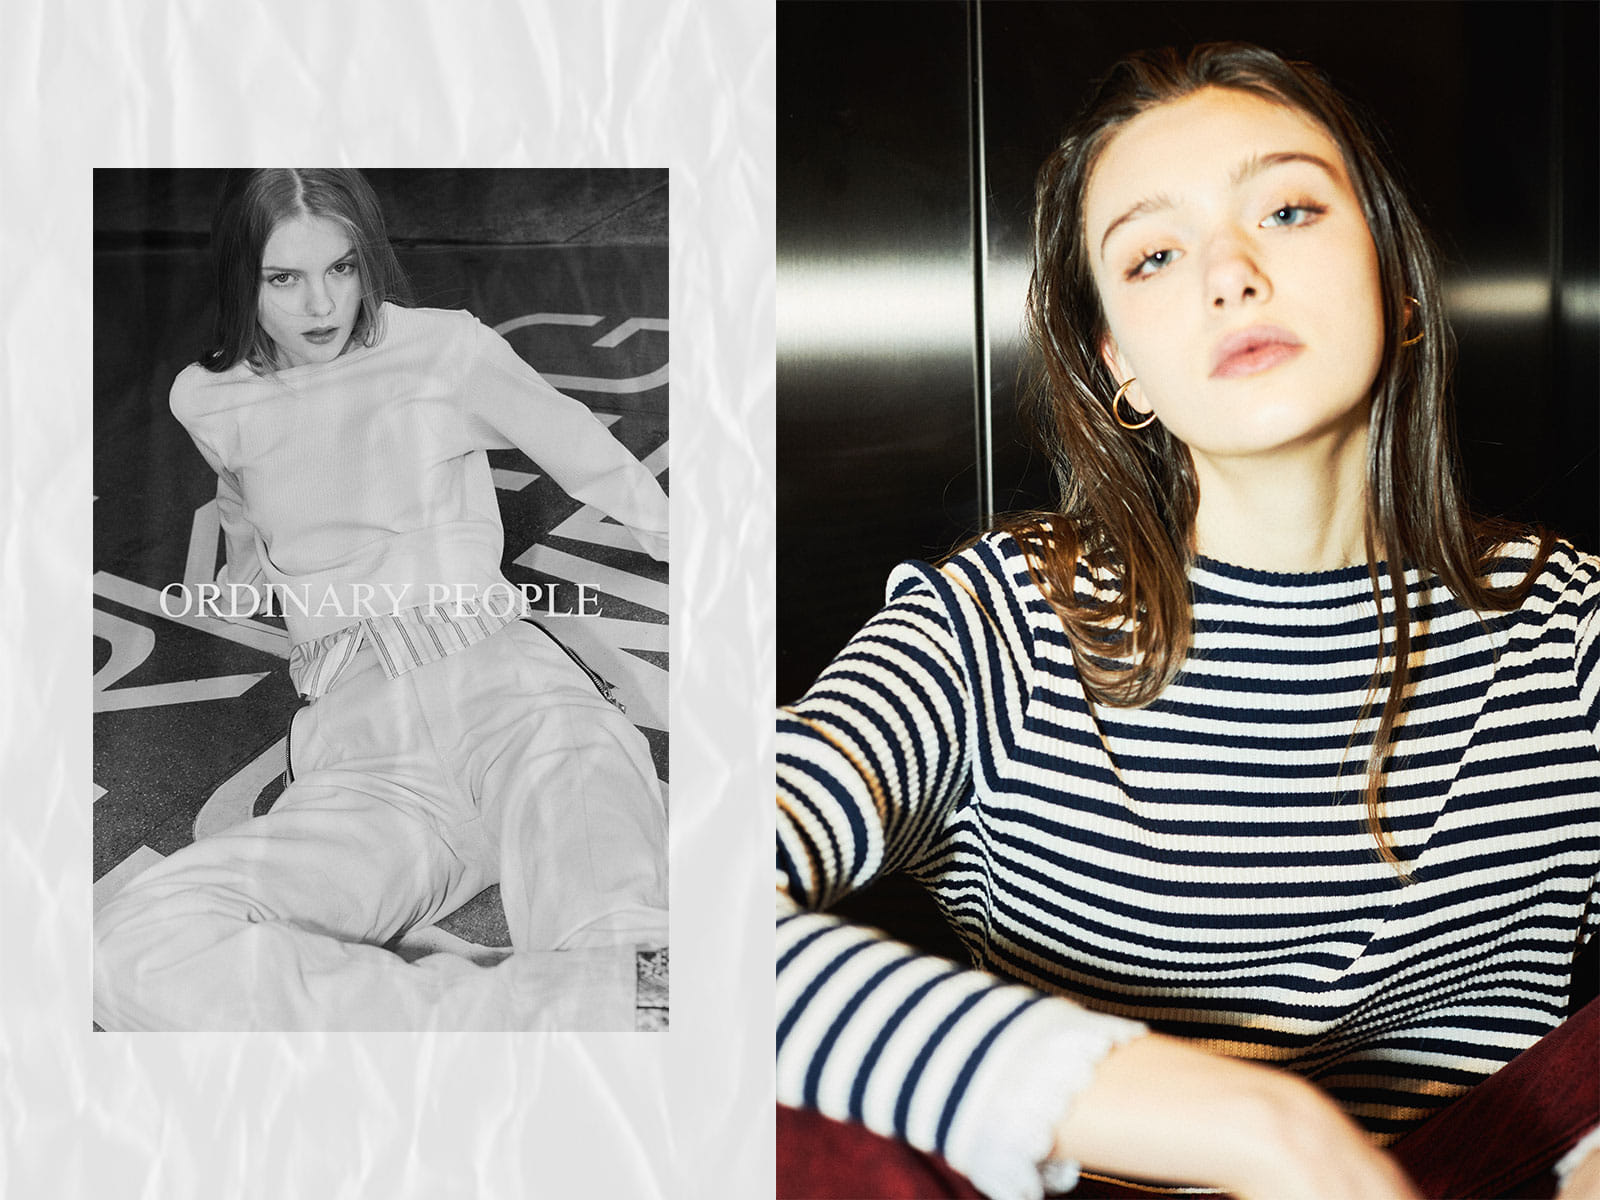 Ordinary people 21s/s Women Shirts Collection